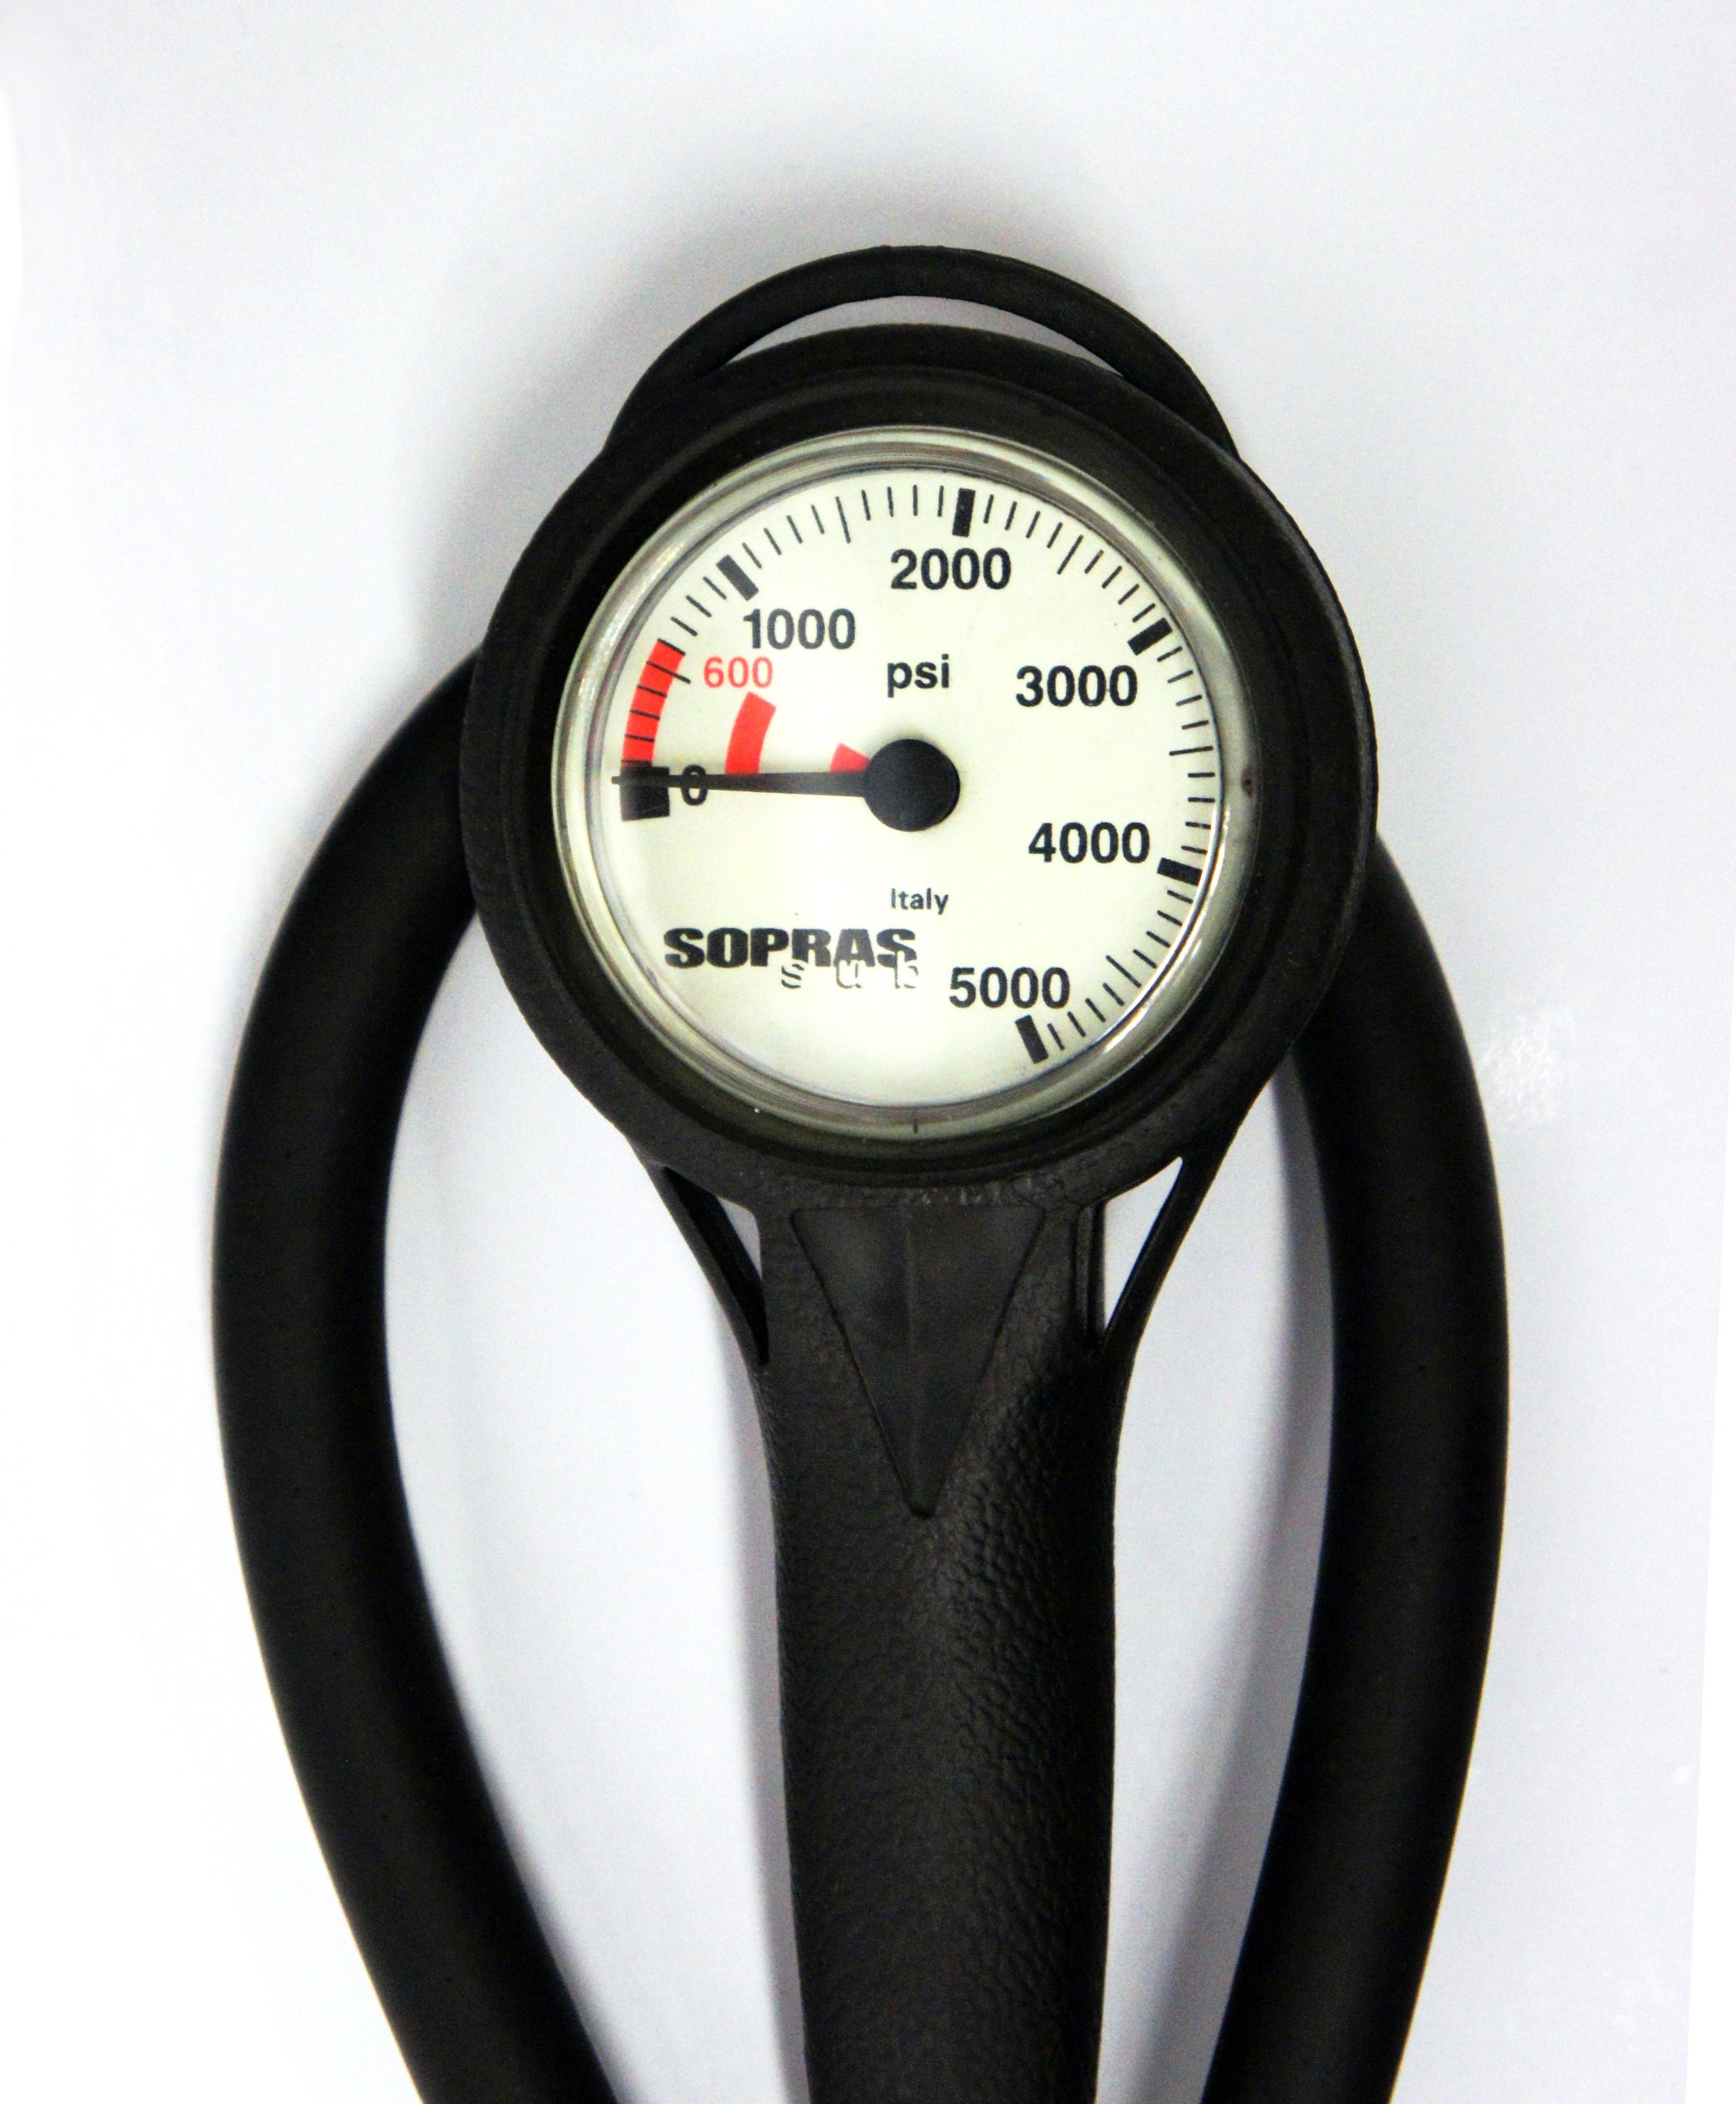 SOPRAS SUB SPG WITH BOOT IMPERIAL ANALOG PRESSURE GAUGE PSI WITH HOSE 1.5 INCH by Sopras Sub (Image #1)